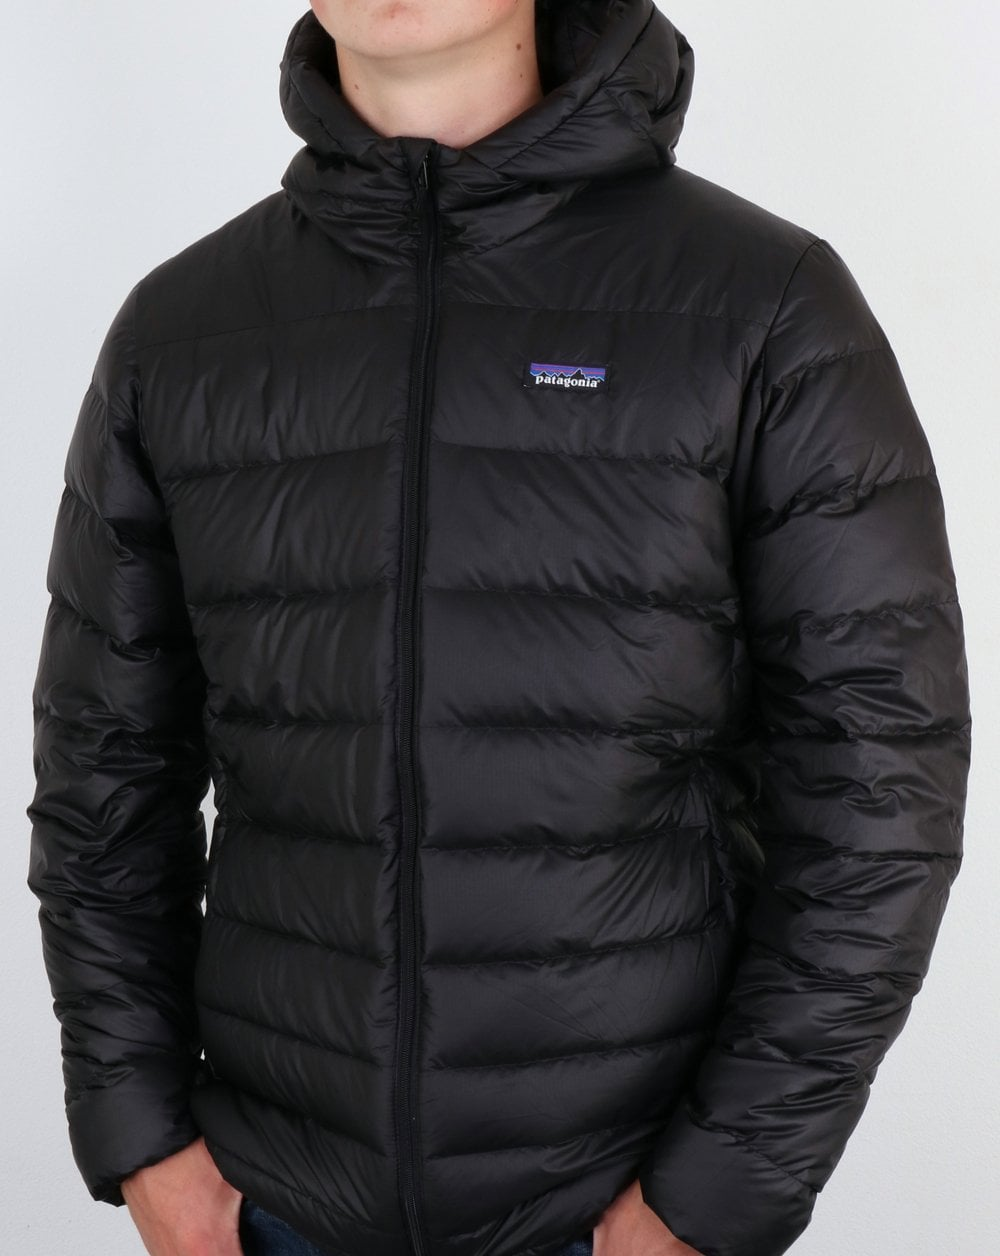 Patagonia Hi Loft Down Hooded Puffer Jacket Black 80s